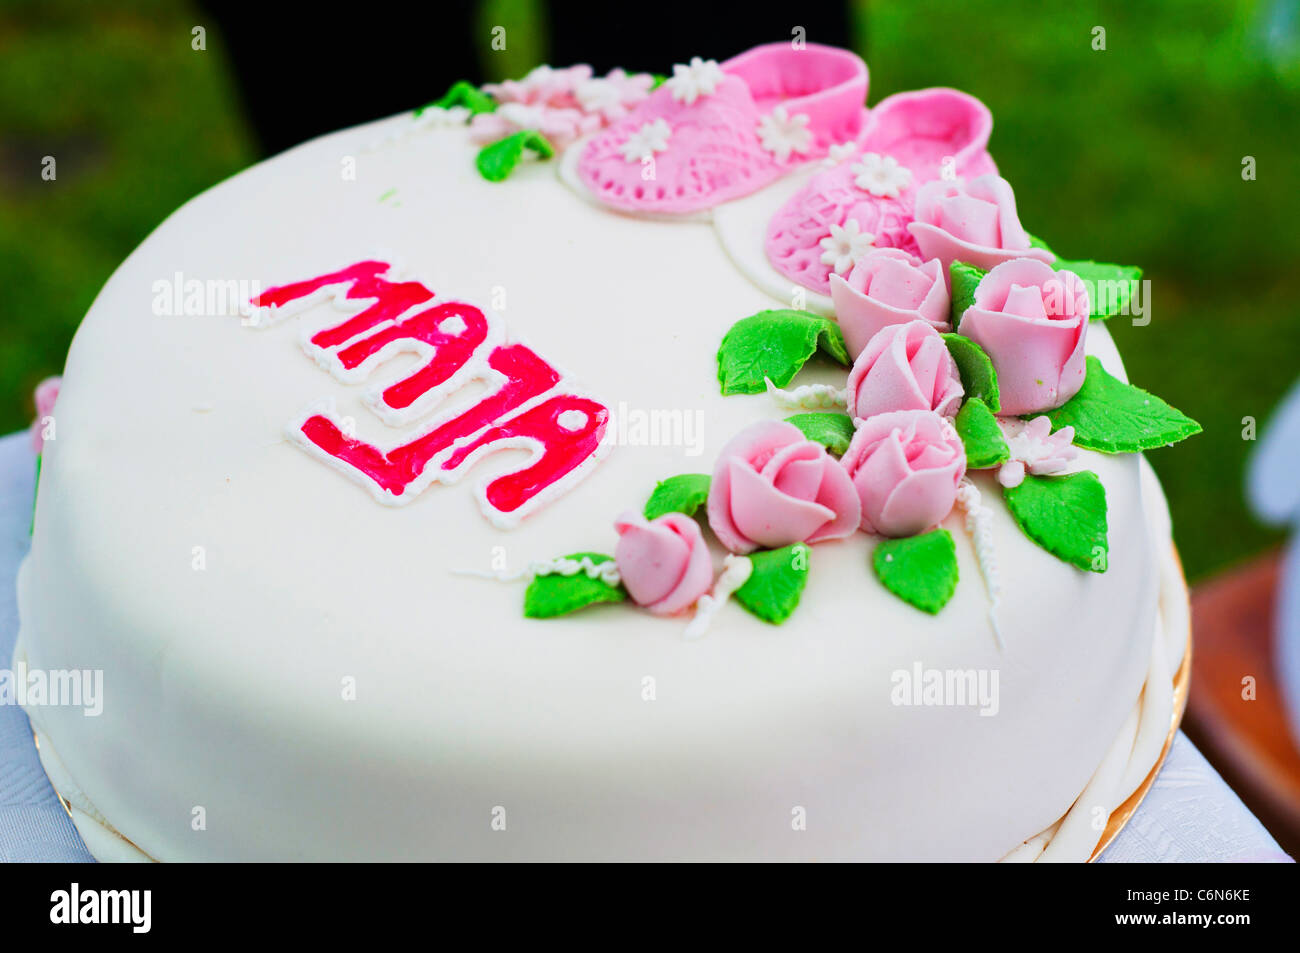 Happy birthday rose flowers cake stock photos happy birthday rose cake with pink flowers and her shoes stock image izmirmasajfo